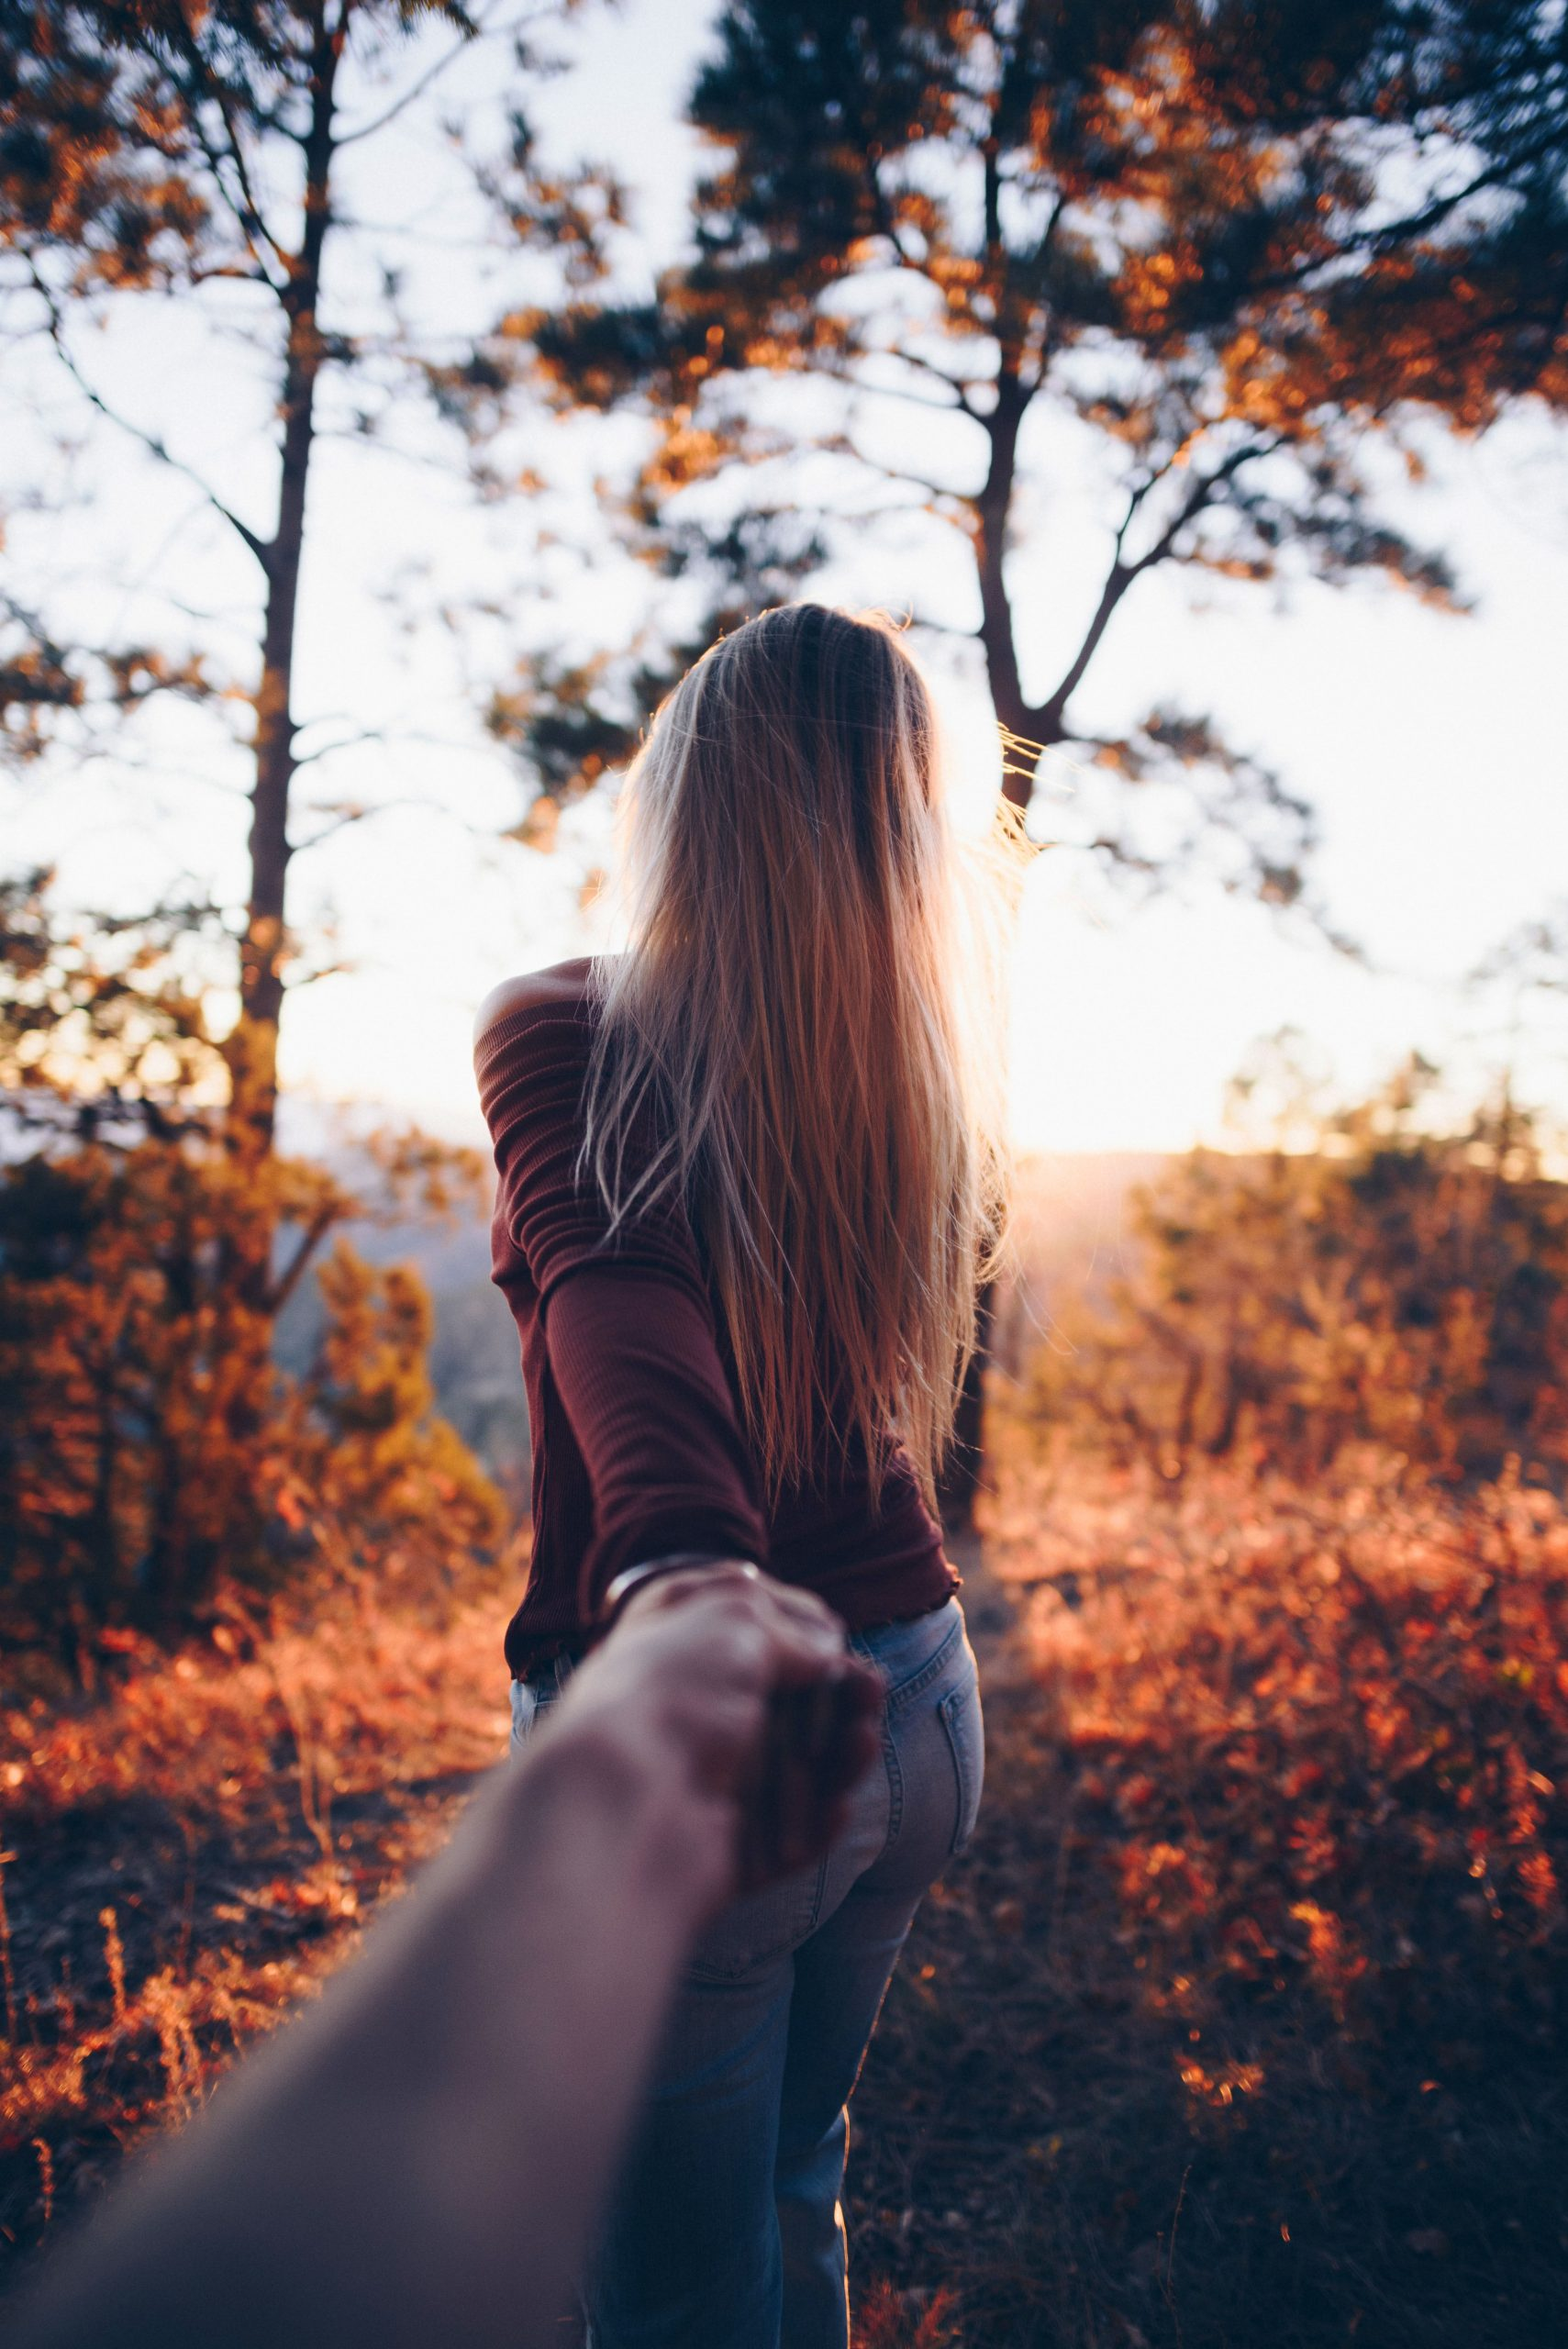 2021 download of Love Couple Sad Whatsapp Dp Images